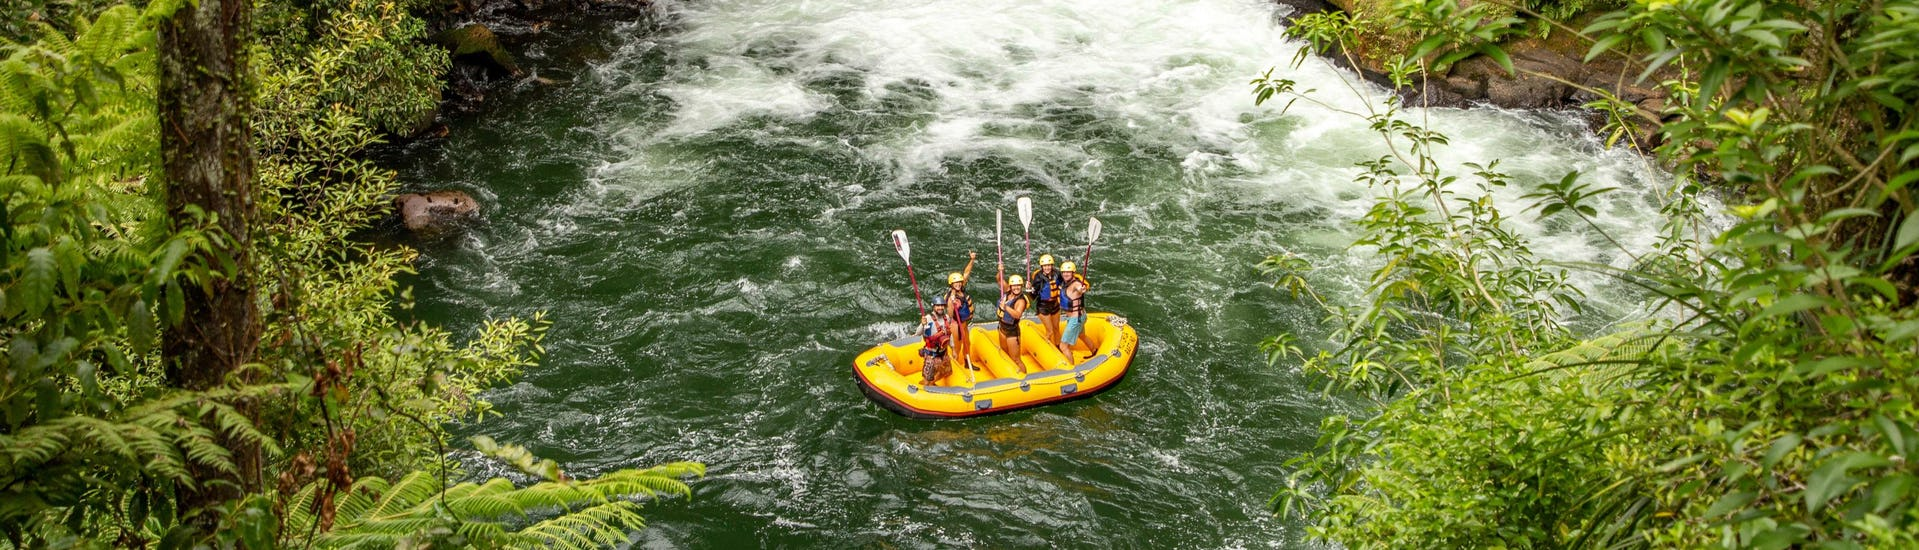 The participants of Rafting on Kaituna River - Winter are celebrating that they just mastered the plunge over Tutea Falls, the world's highest commercially rafted waterfall, together with their professional guides from Rotorua Rafting.